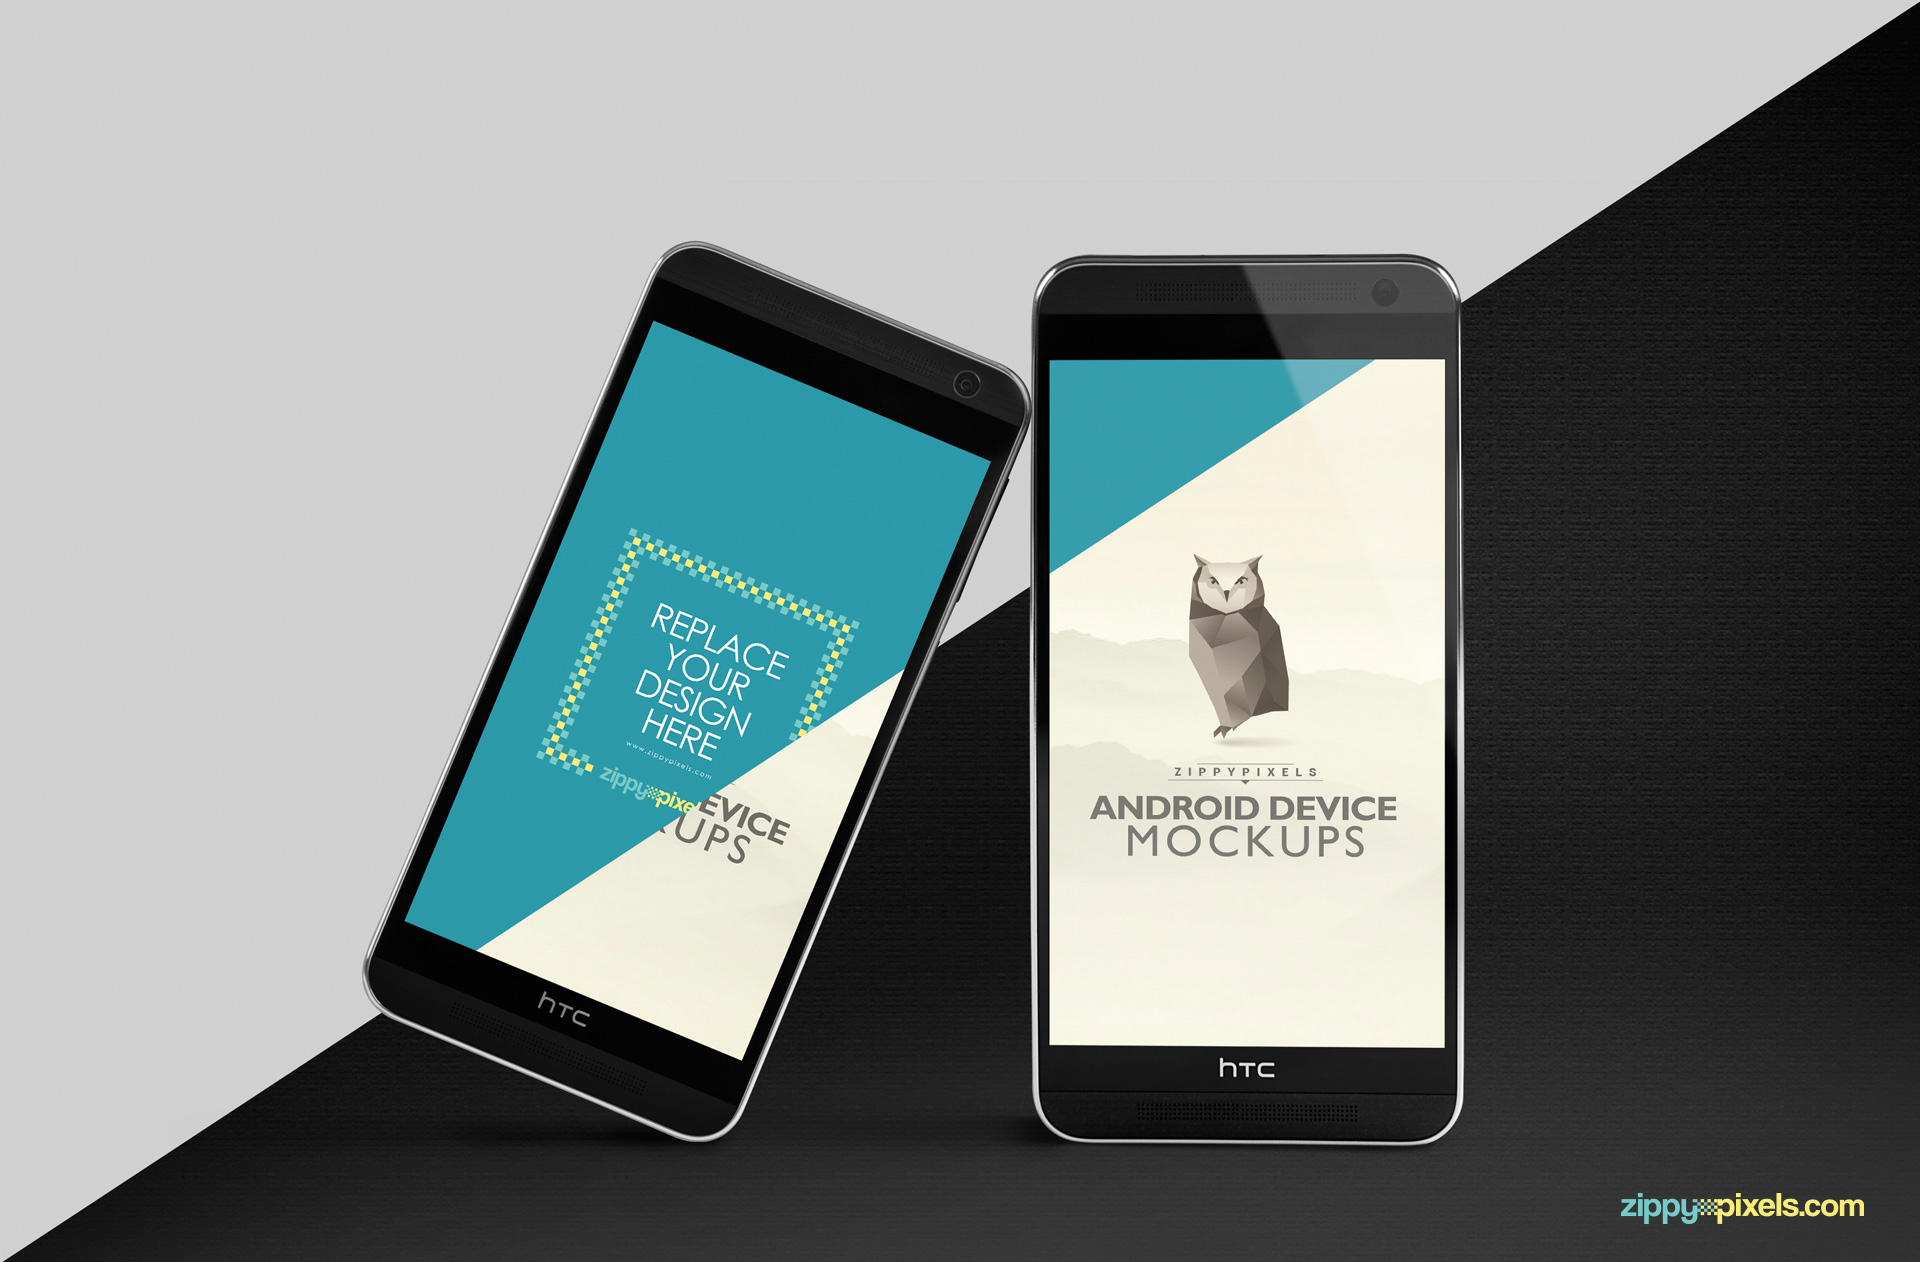 device mockups to present your ui designs - Mockups For Android